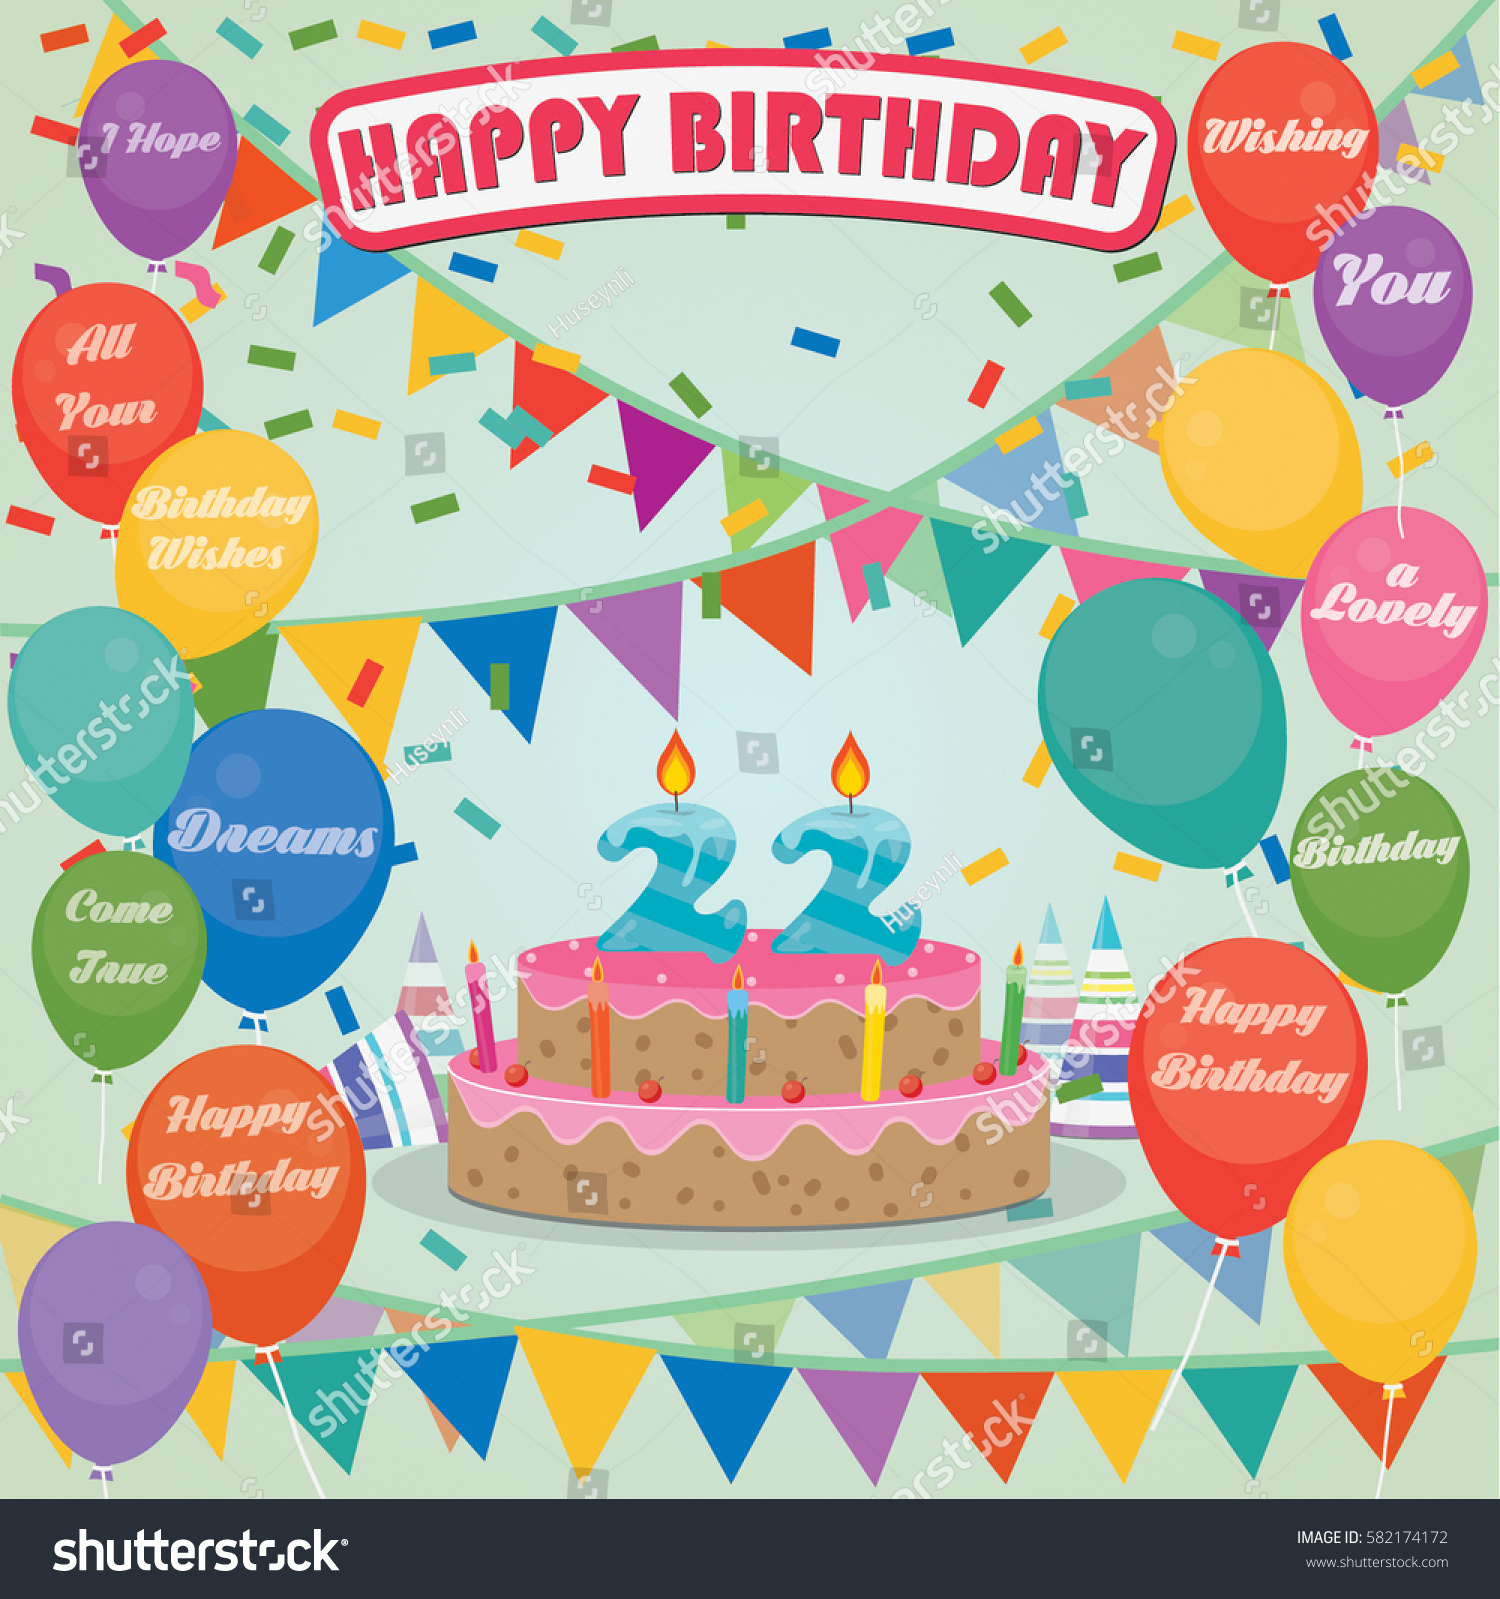 22th Birthday Cake And Decoration Background In Flat Design With Balloons Candles